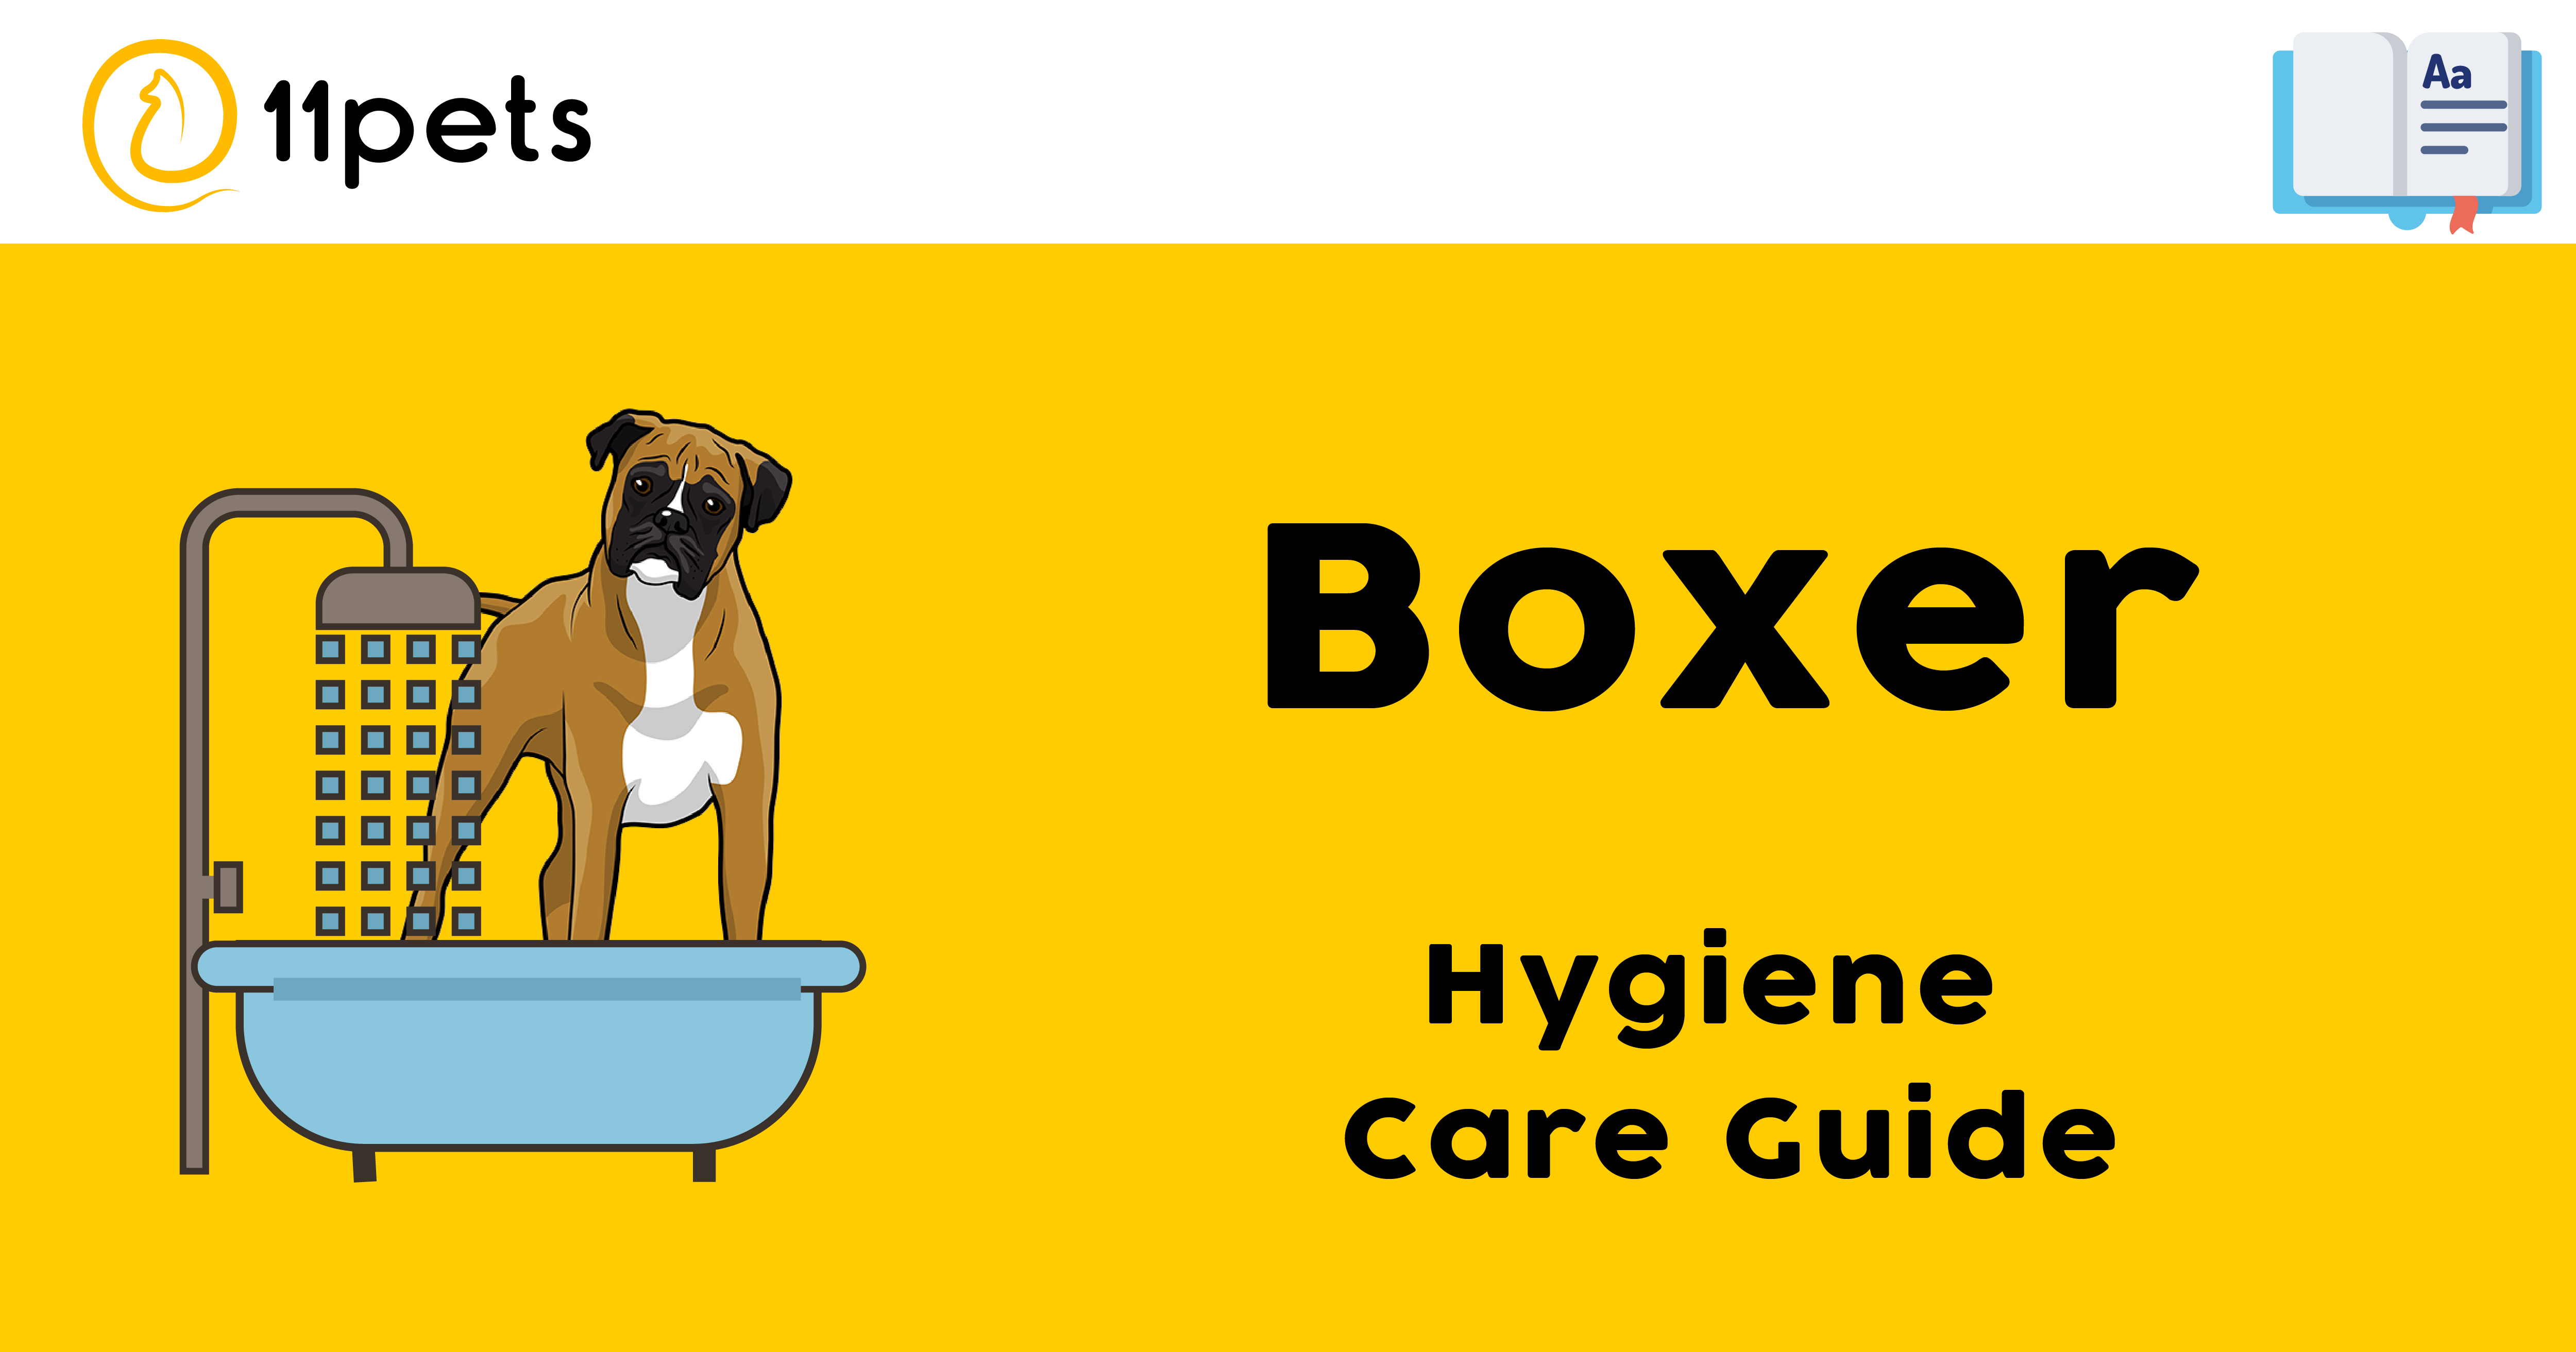 Hygiene Care Guide for Boxer